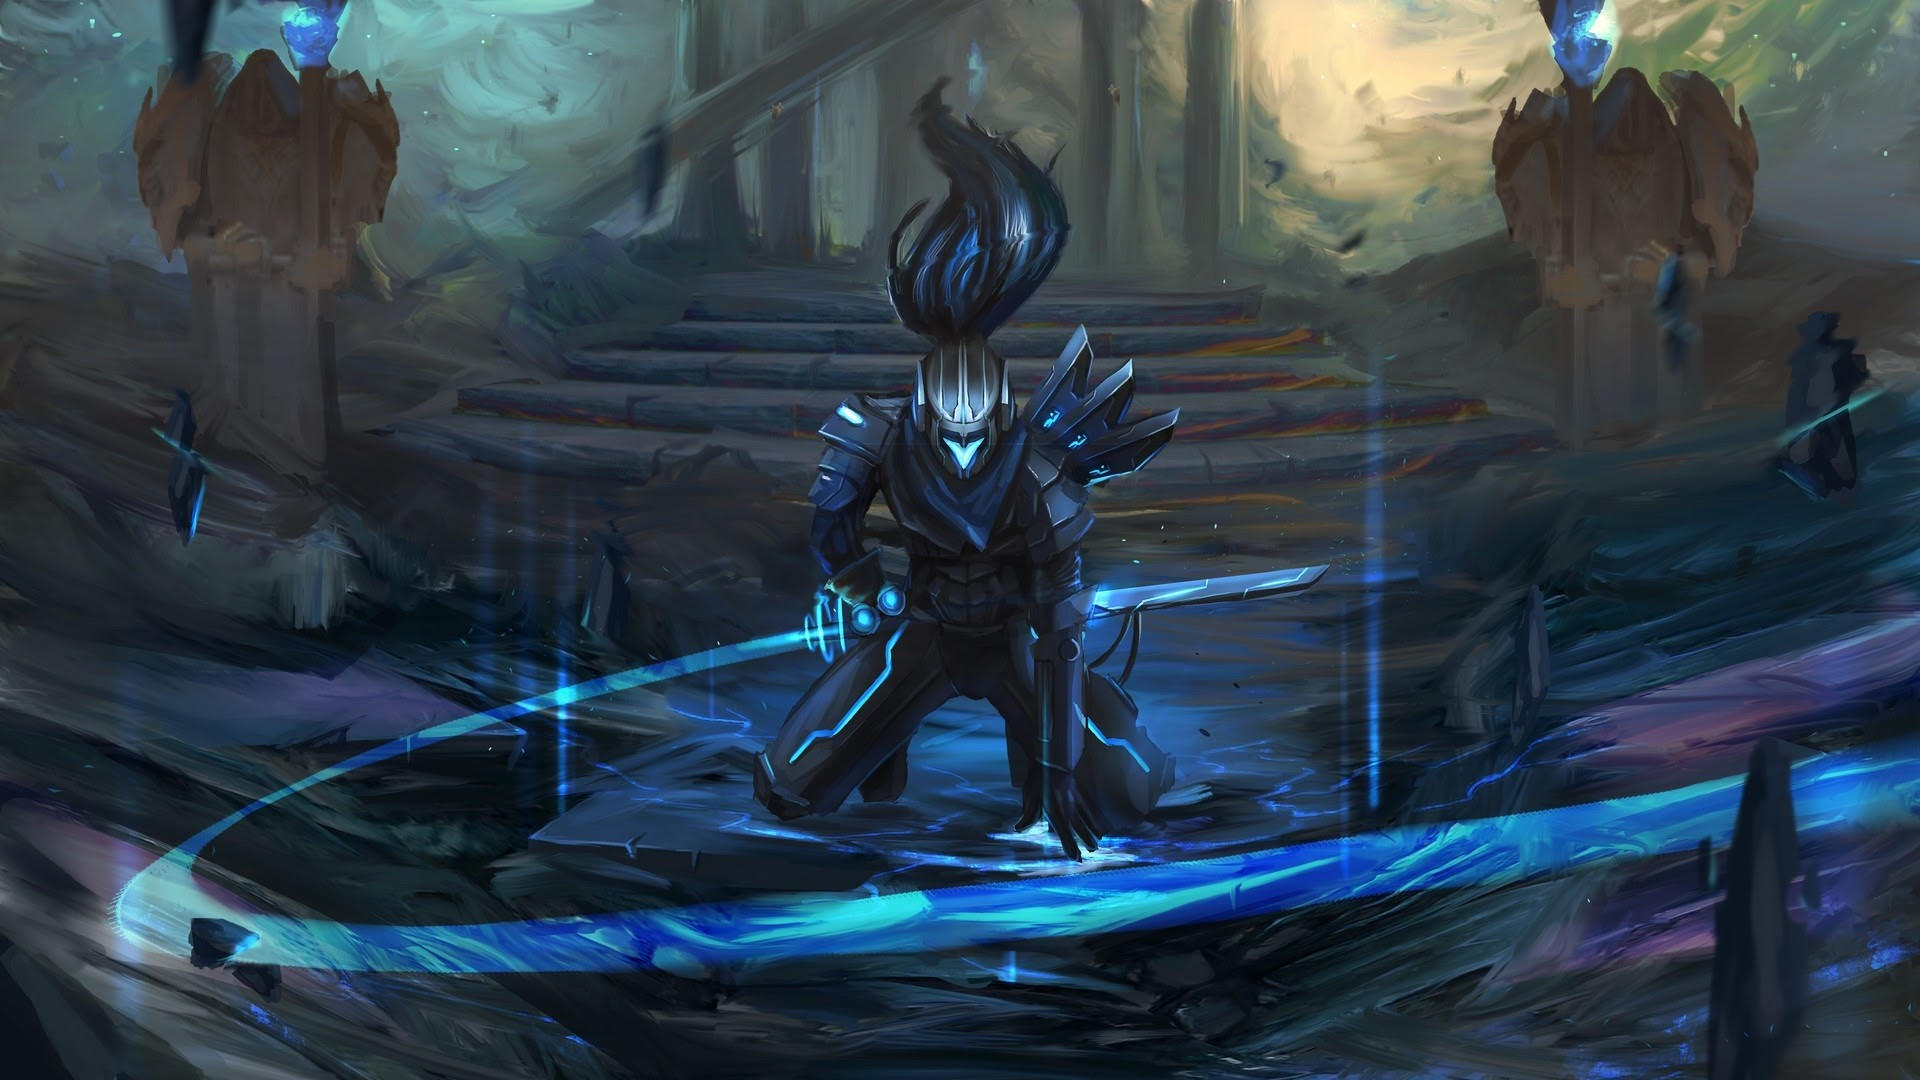 1920x1080 Project Yasuo League of Legends Wallpaper #34431